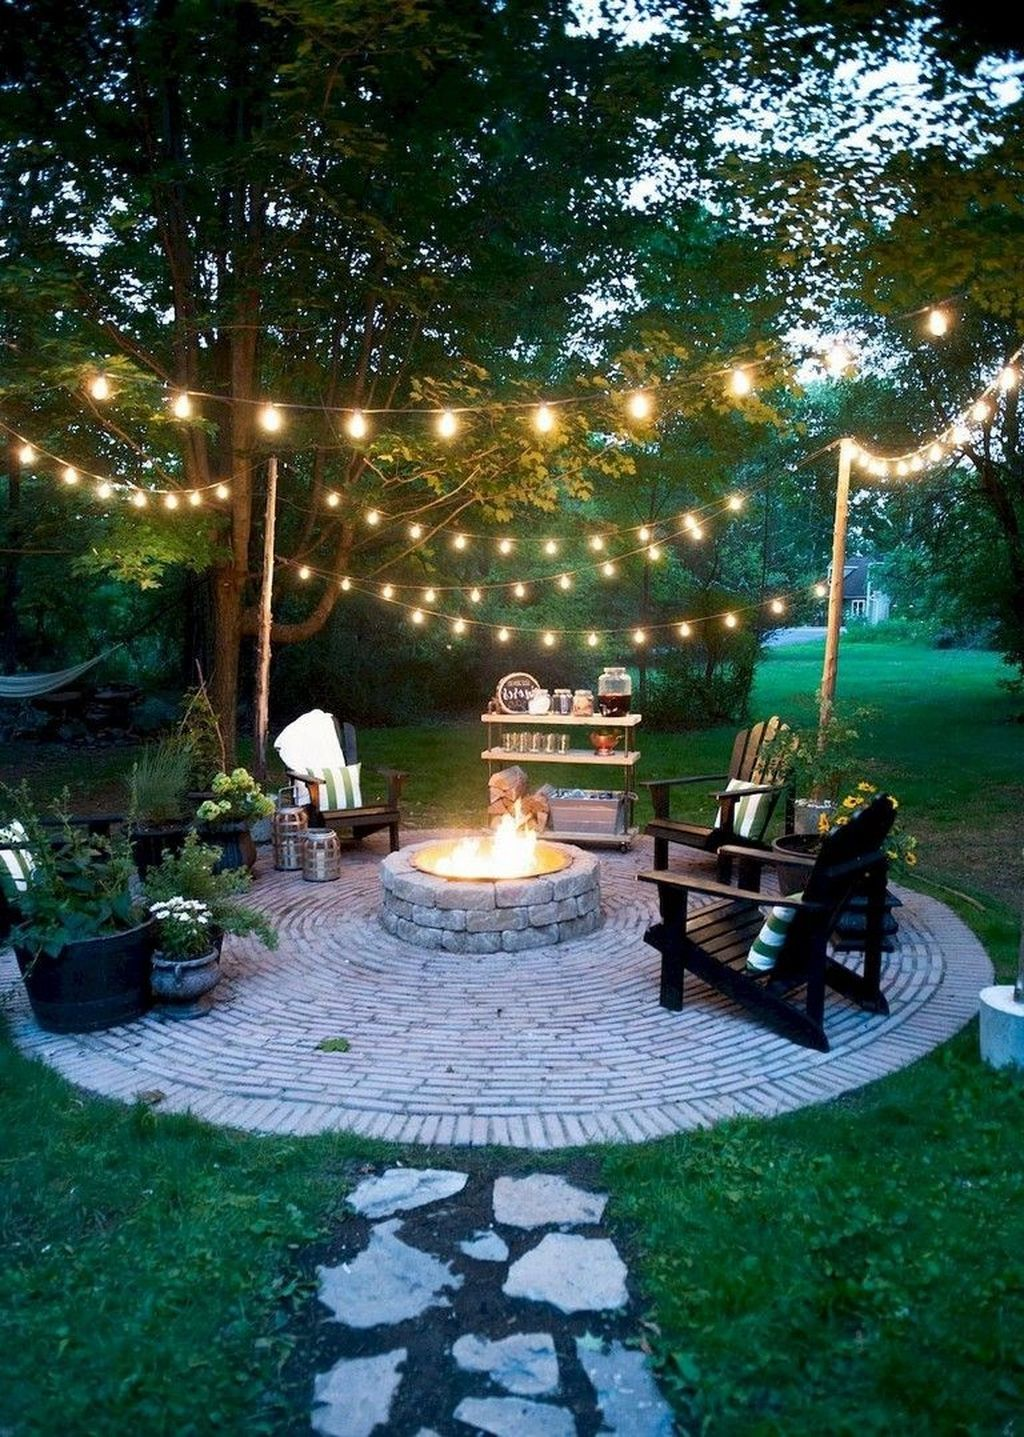 30 Creative Diy Fire Pit Ideas To Improve Your Backyard Backyard Seating Area Backyard Backyard Fire